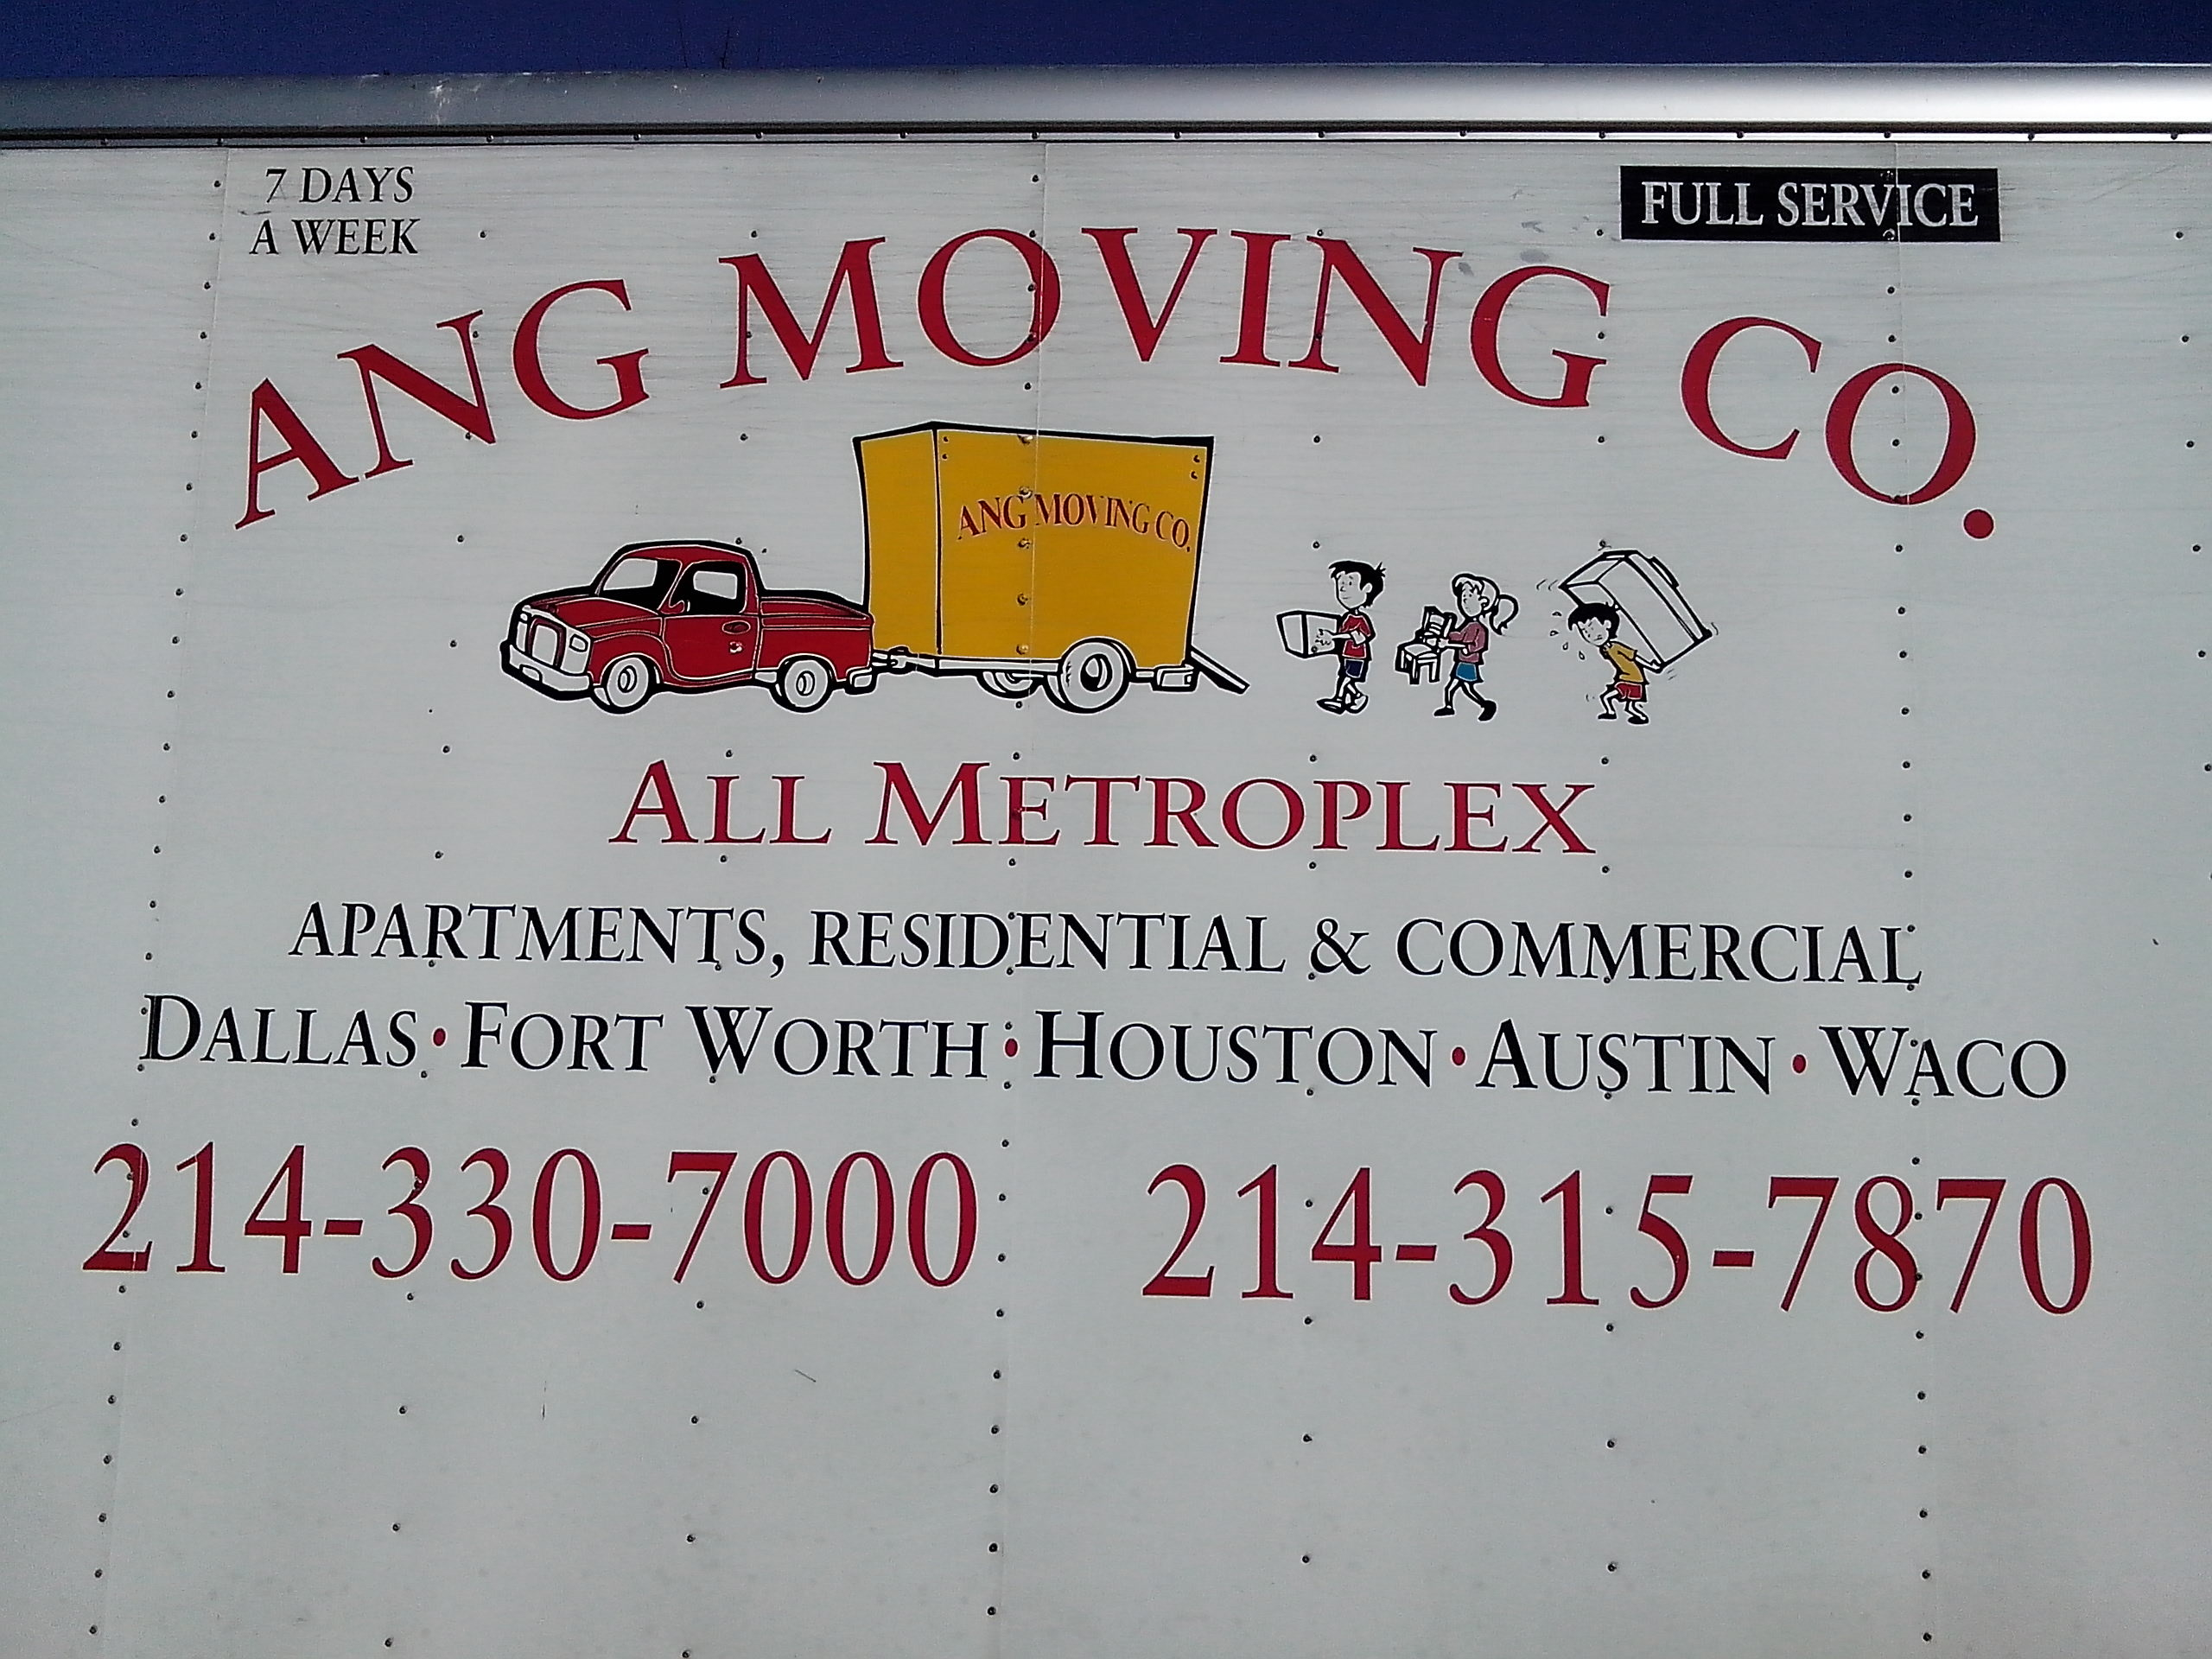 ang moving co 1507 mountain lake rd dallas, tx furniture movers